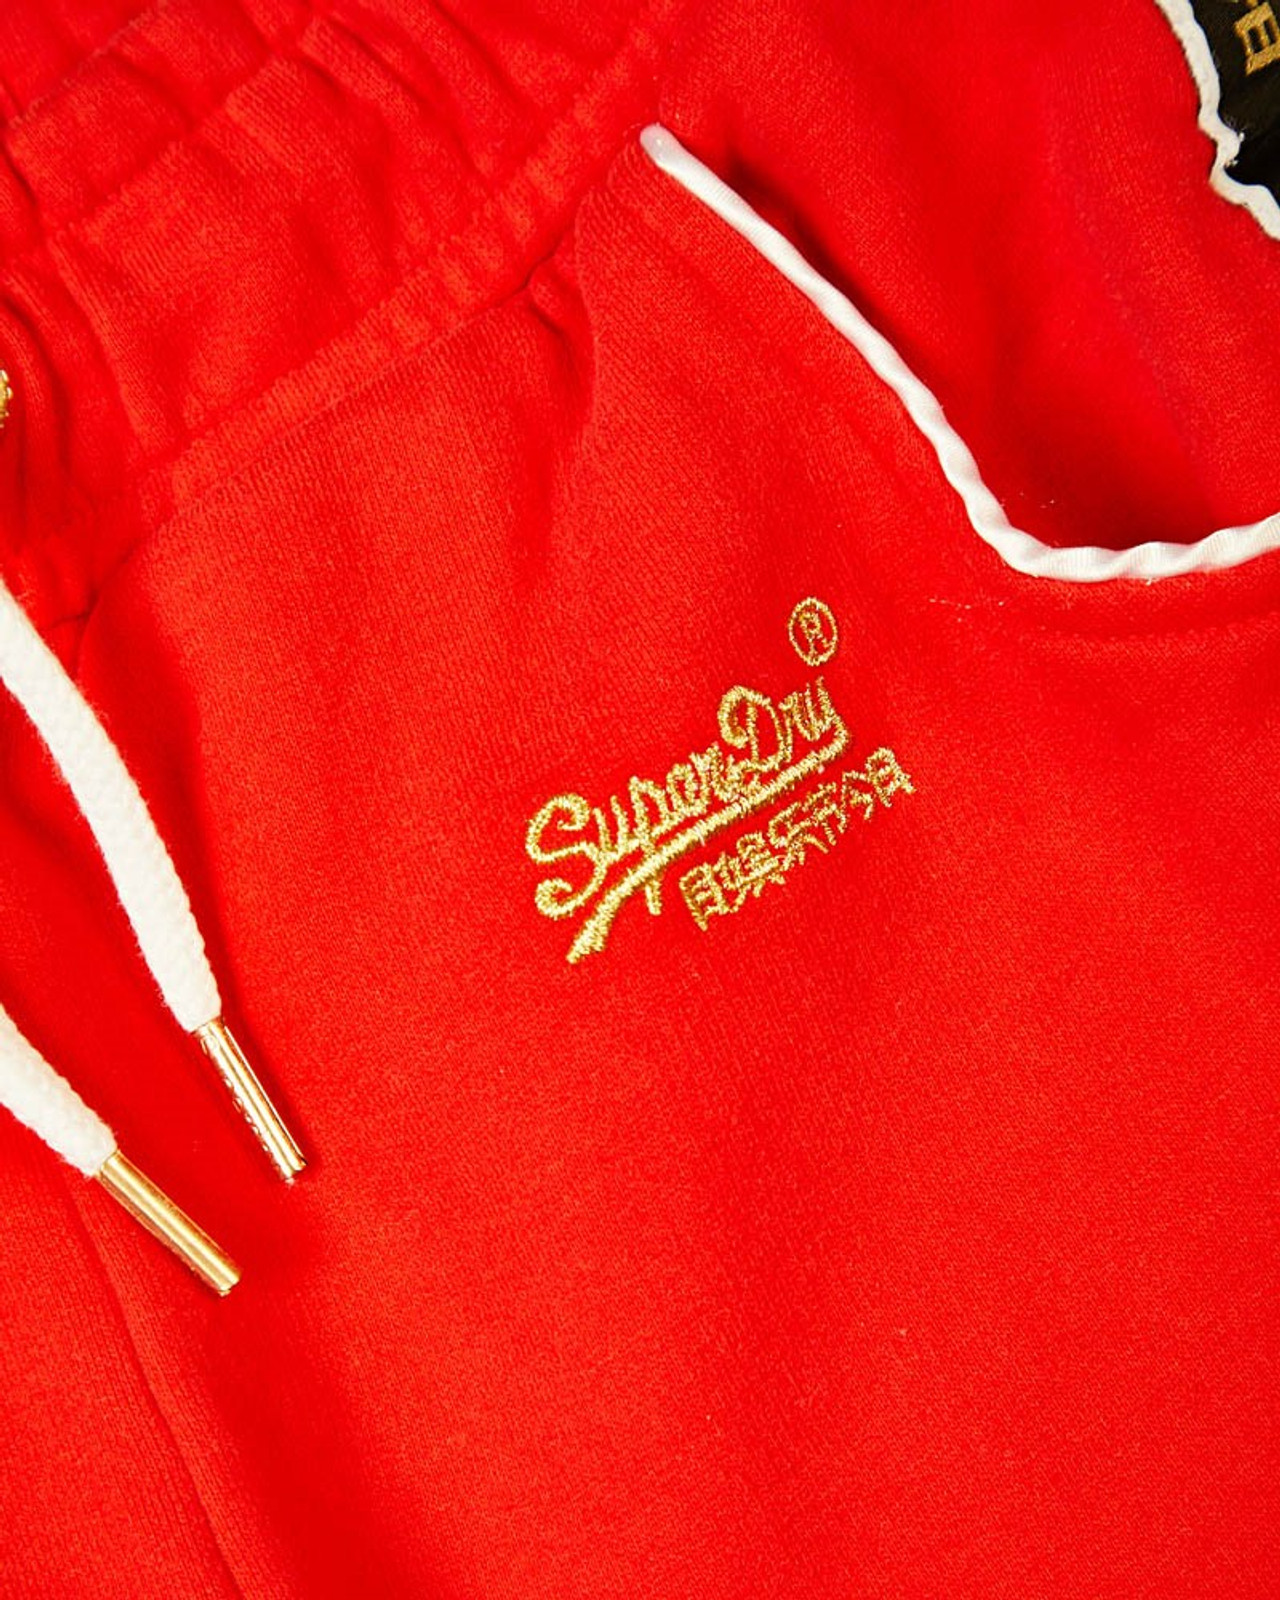 Superdry Womens CNY JOGGER Red Cuffed Joggers 4